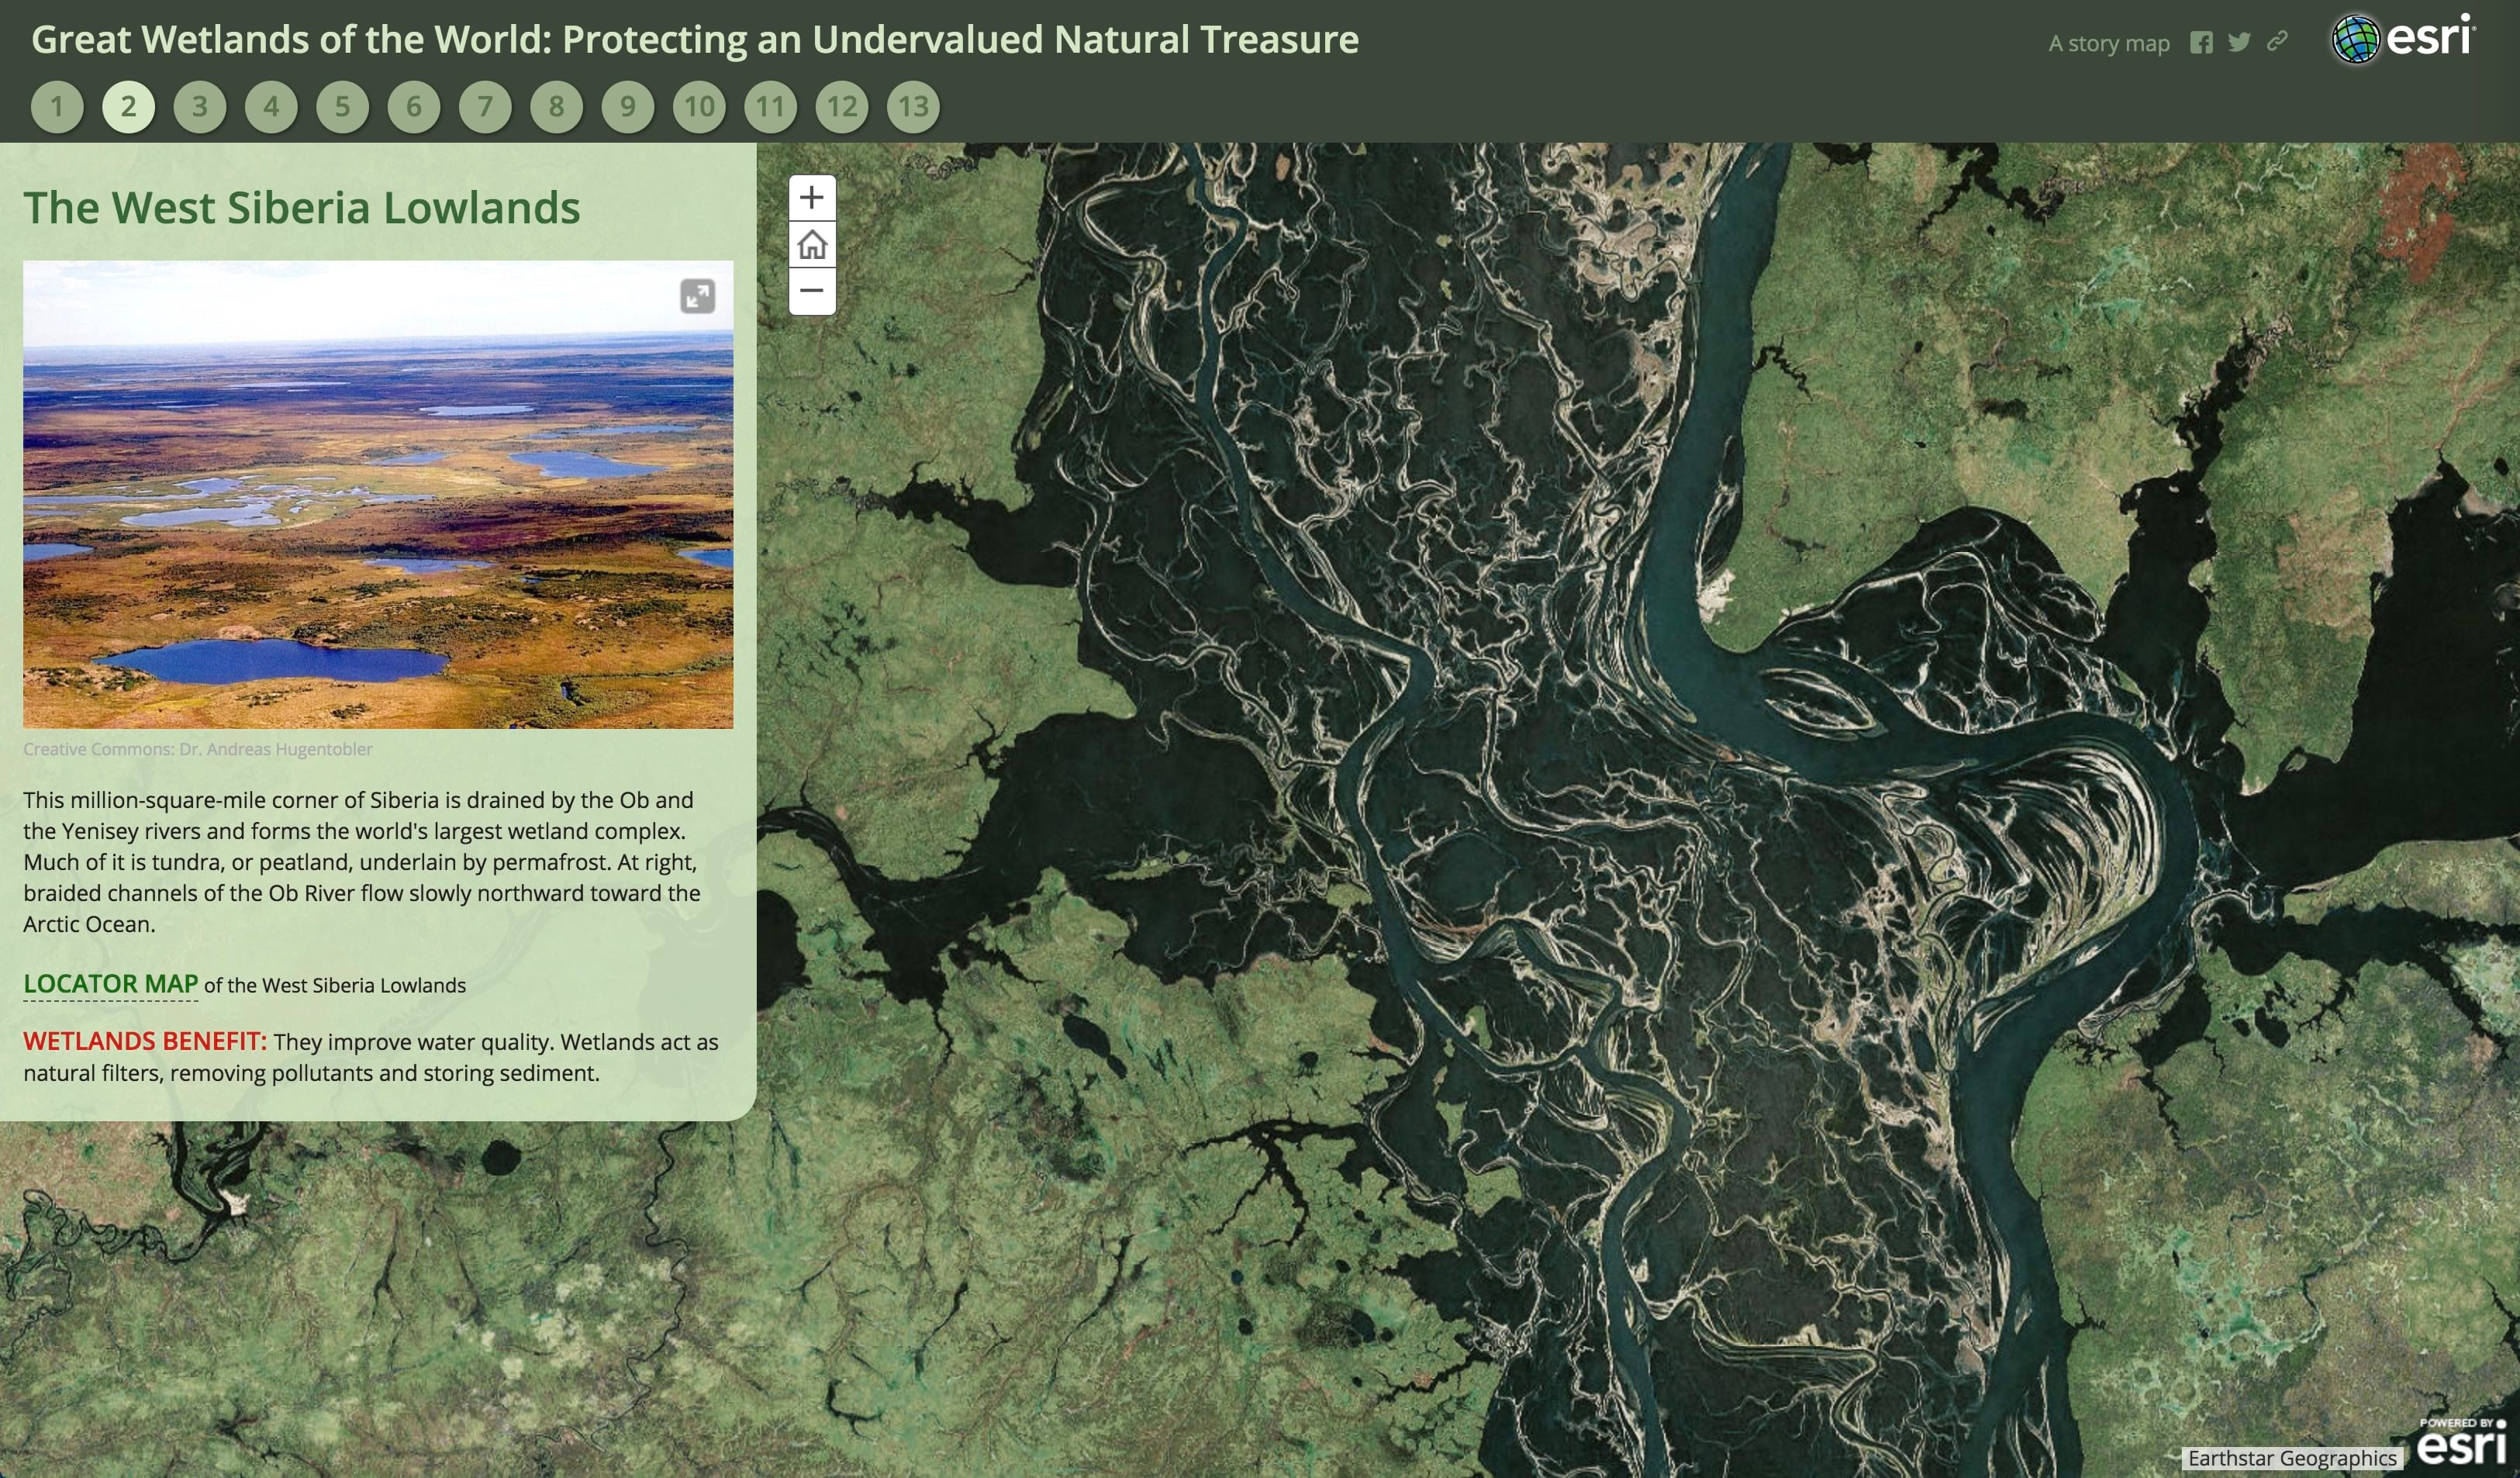 Great Wetlands of the World story map